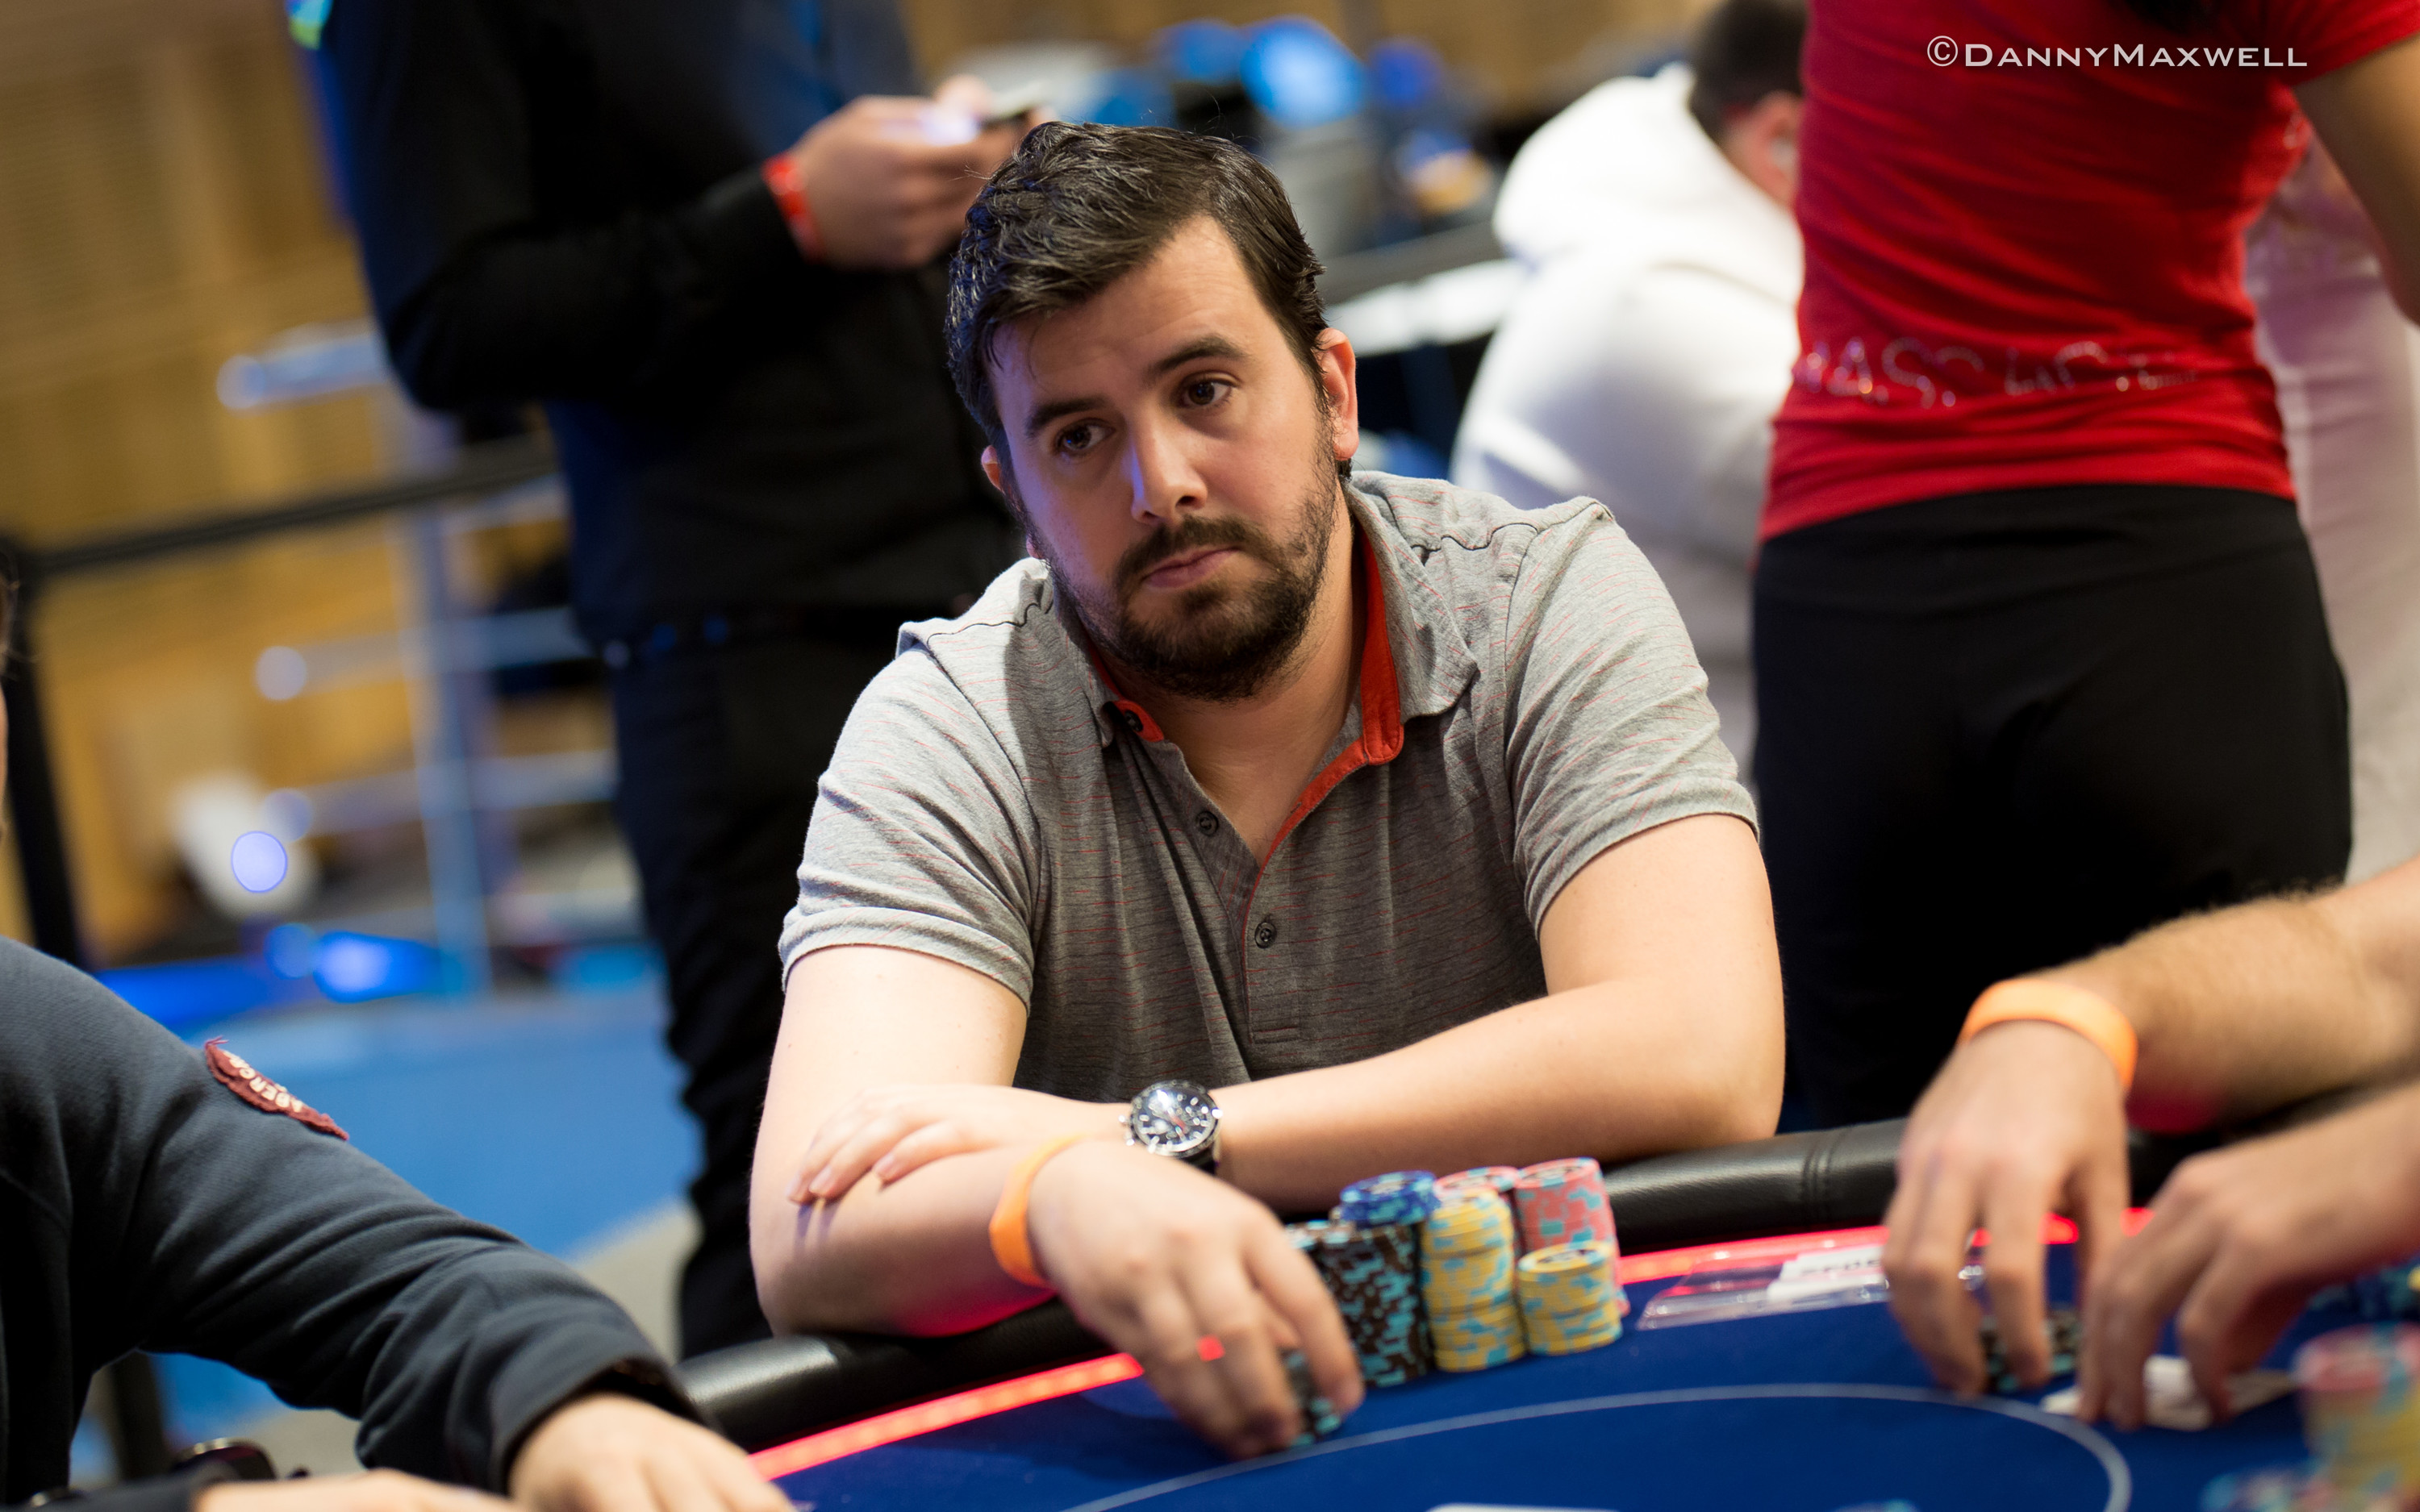 Andras Nemeth Wins SCOOP High Roller, Blom 8th, Schemion